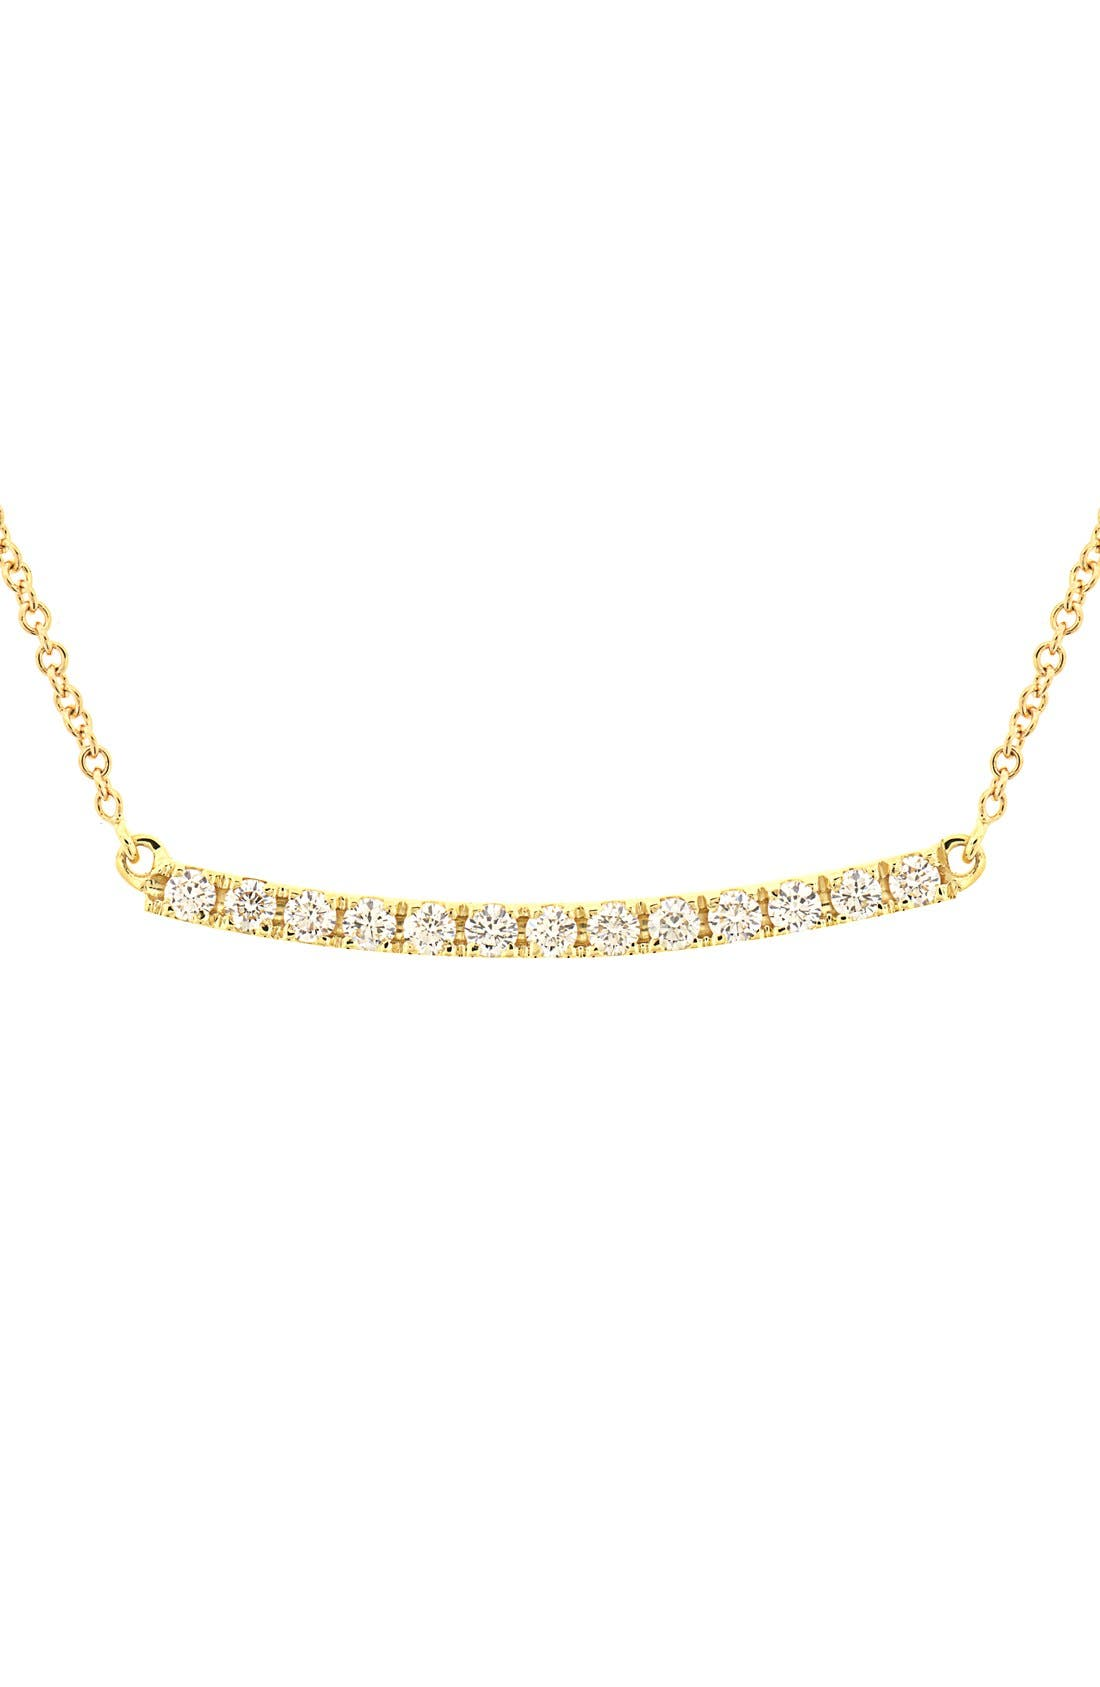 Alternate Image 1 Selected - Bony Levy 'Stick' Pavé Diamond Bar Necklace (Nordstrom Exclusive)